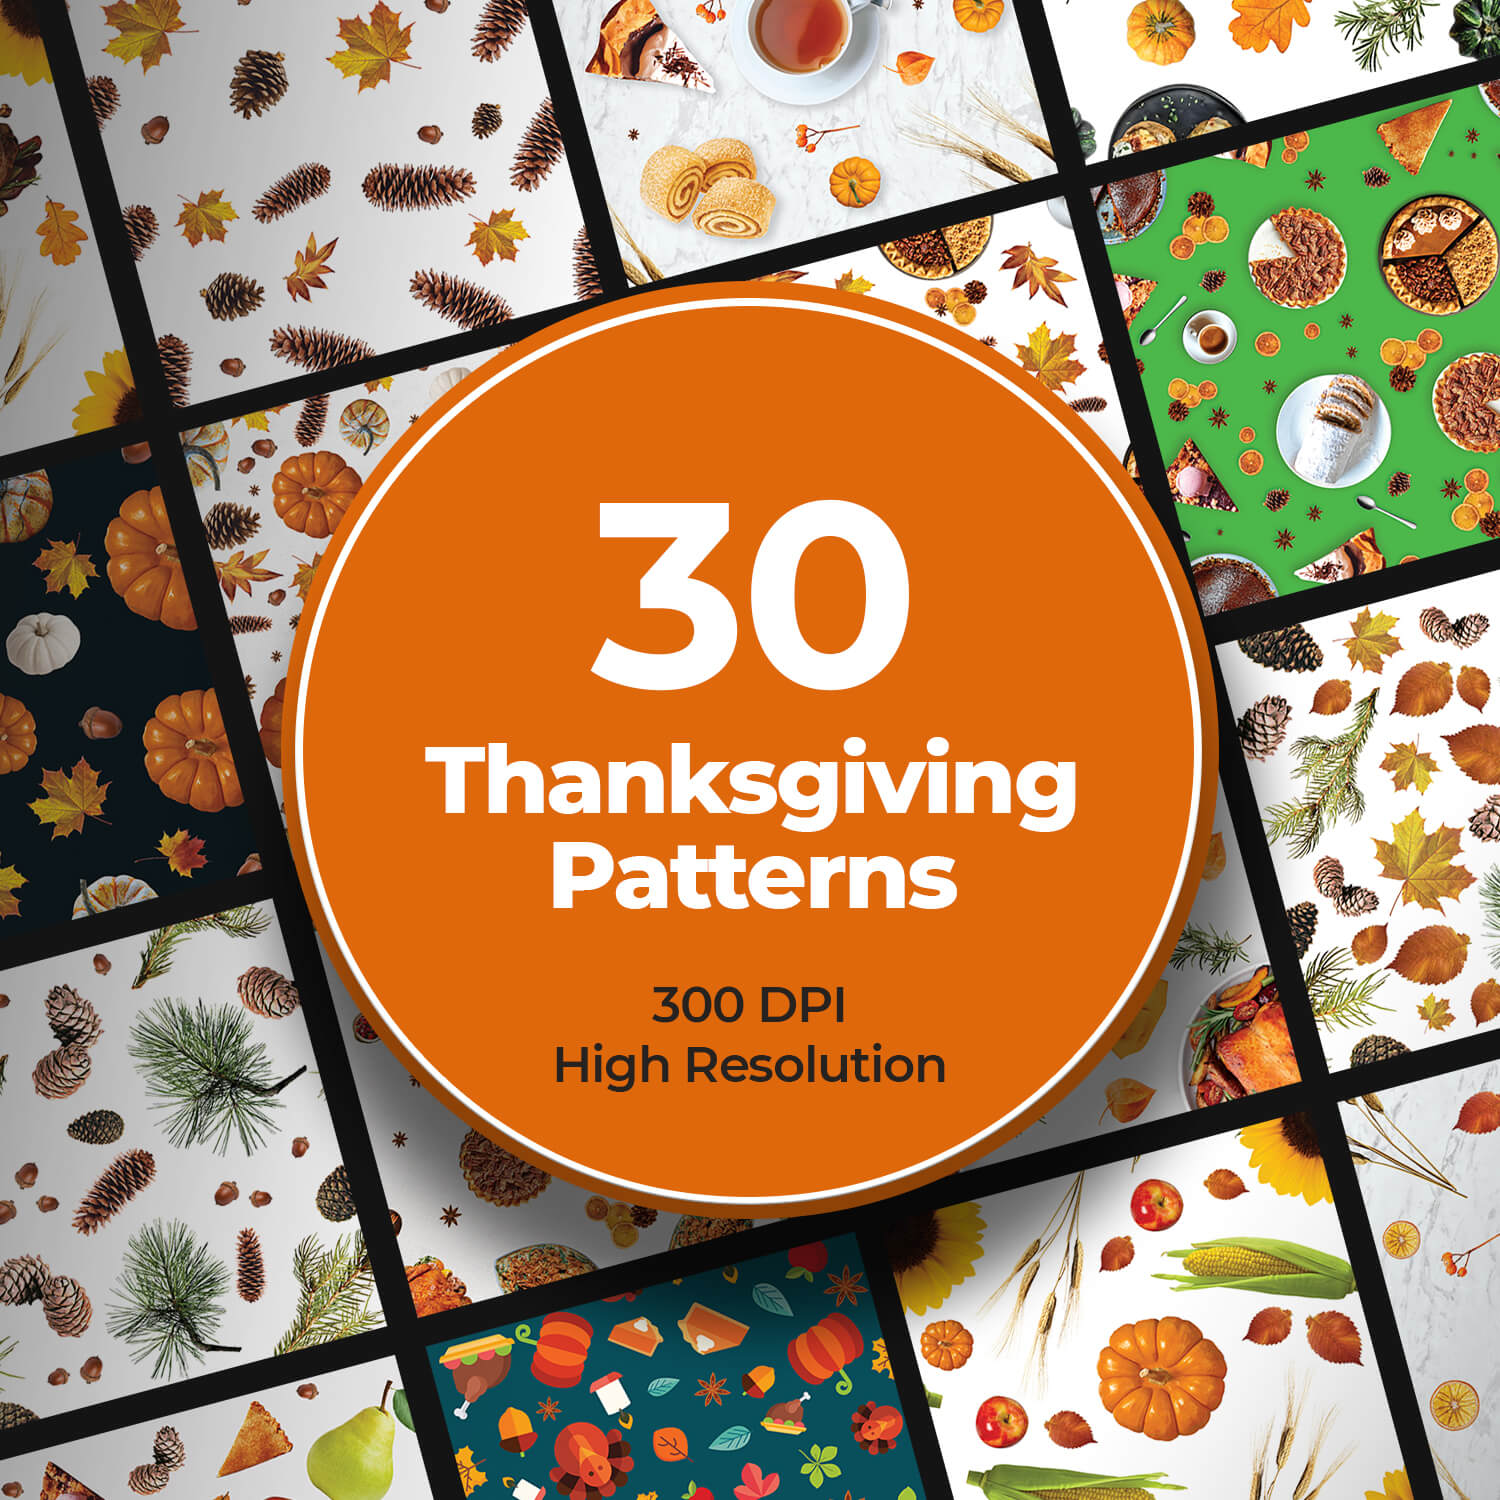 Thanksgiving Patterns cover image.